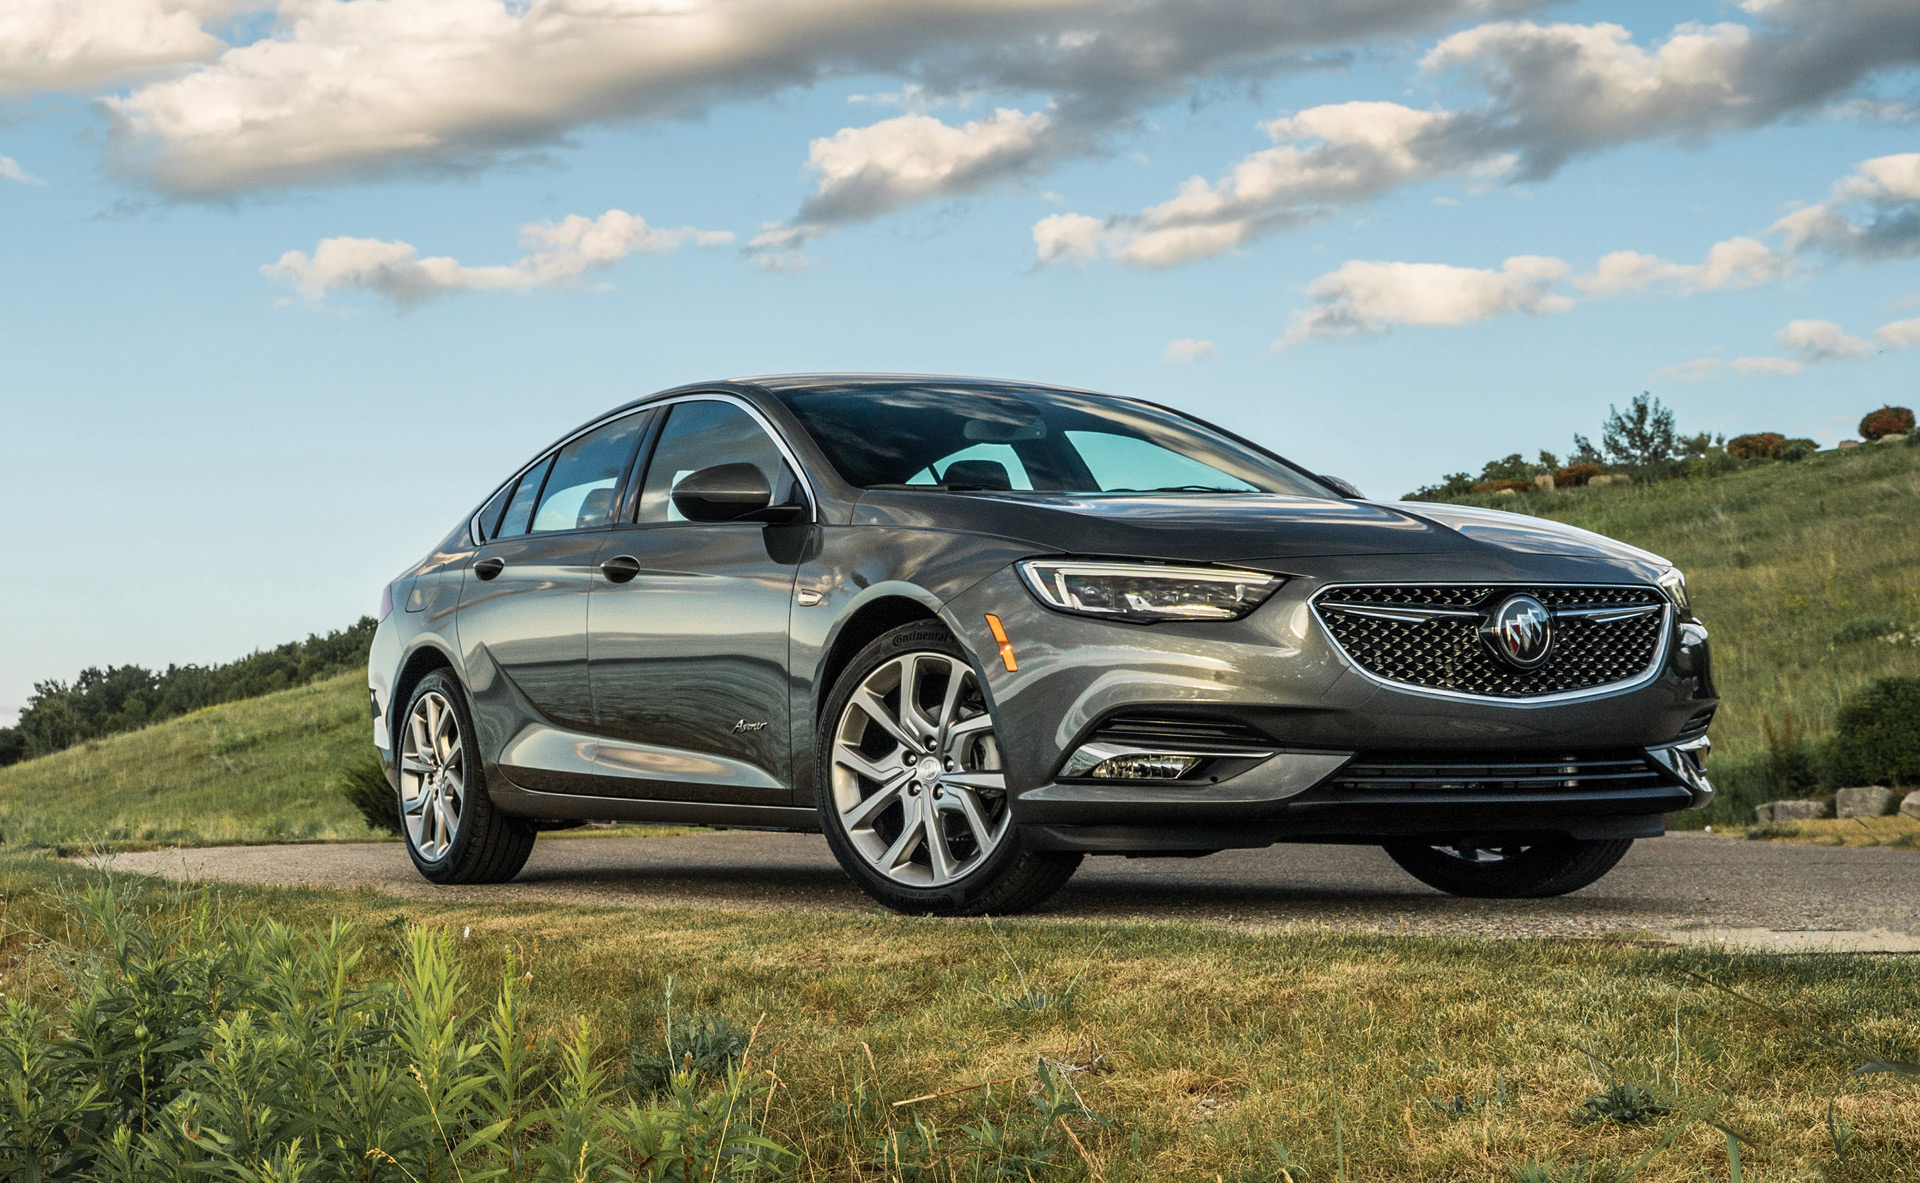 2019 Buick Regal Sportback Avenir: A Mid-Size, Full-Luxe 2022 Buick Regal Sportback Engine, Preferred, Pics